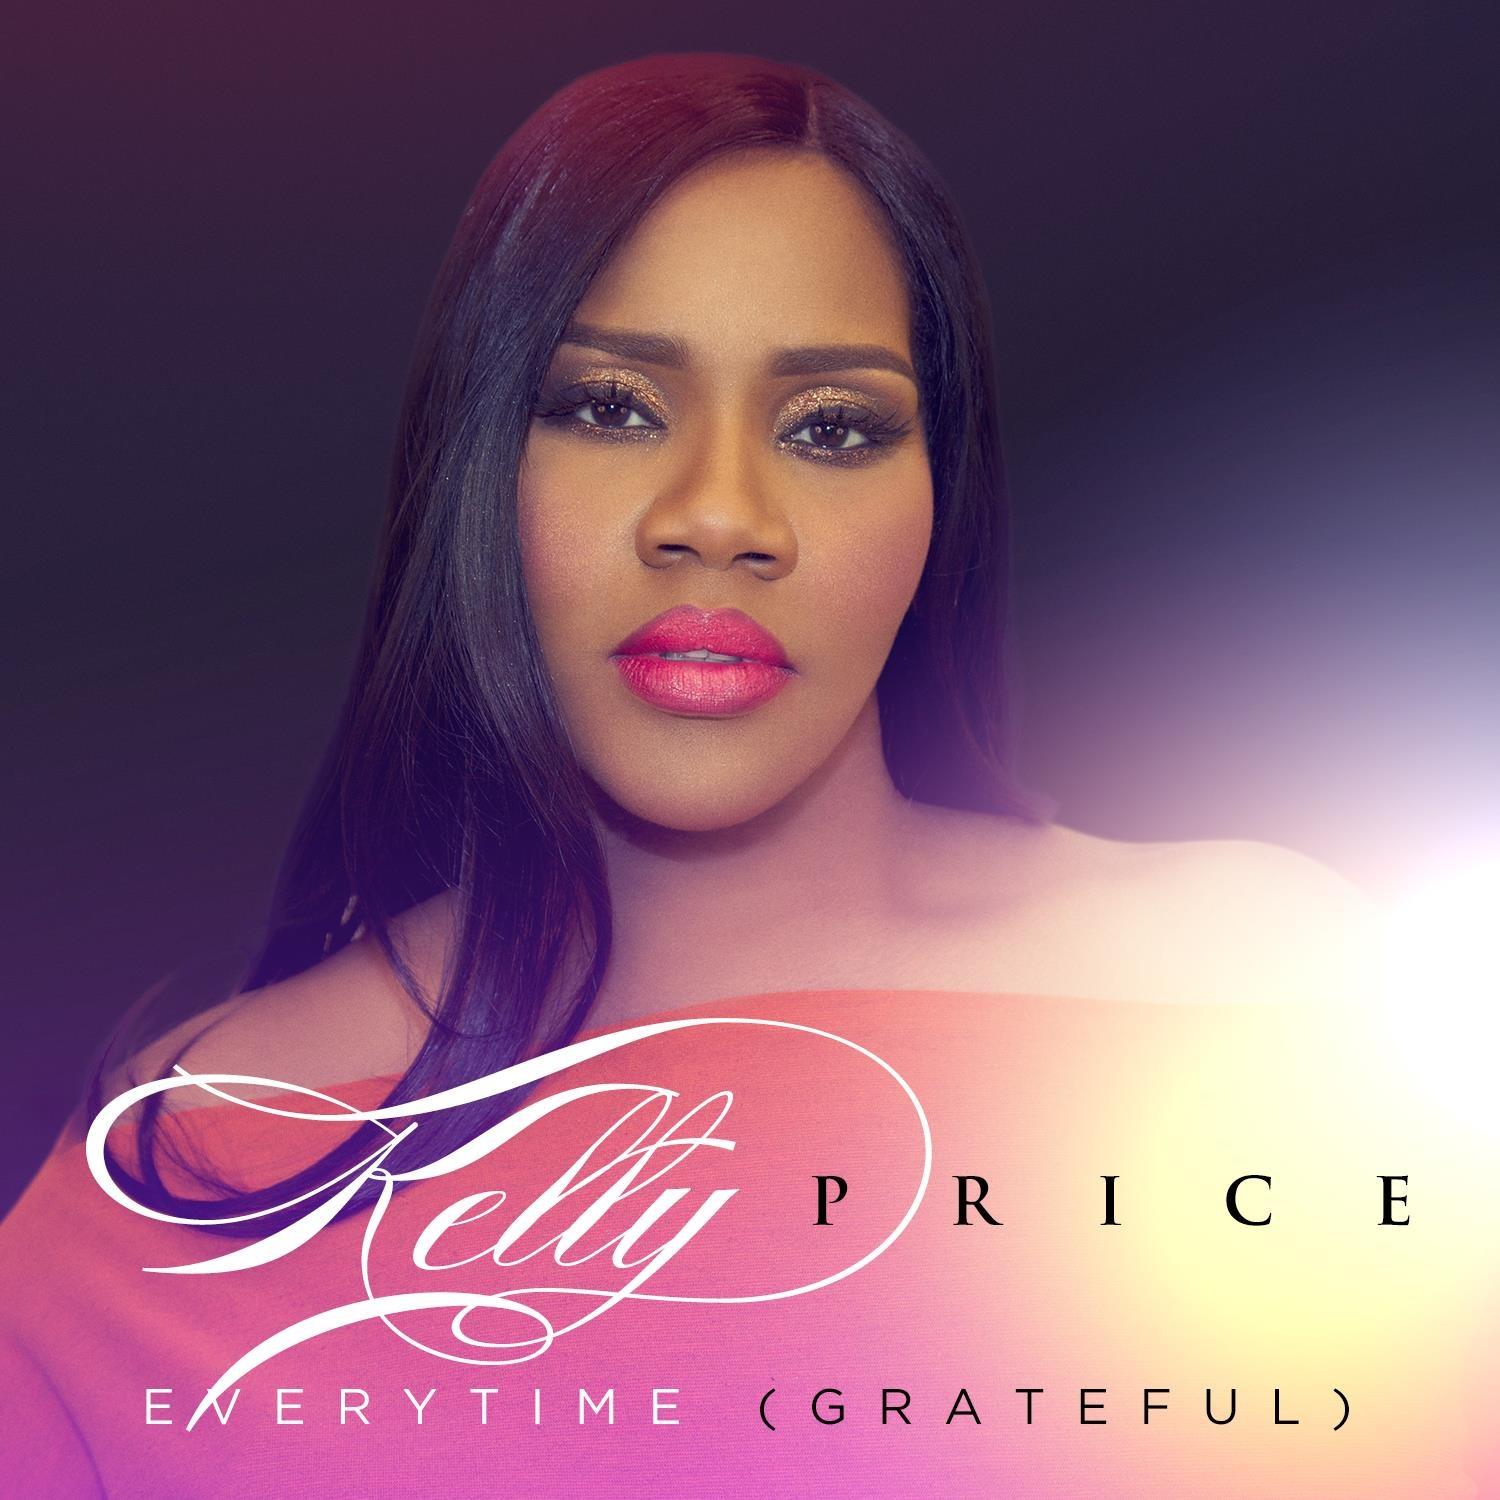 Kelly Price Every Time Grateful